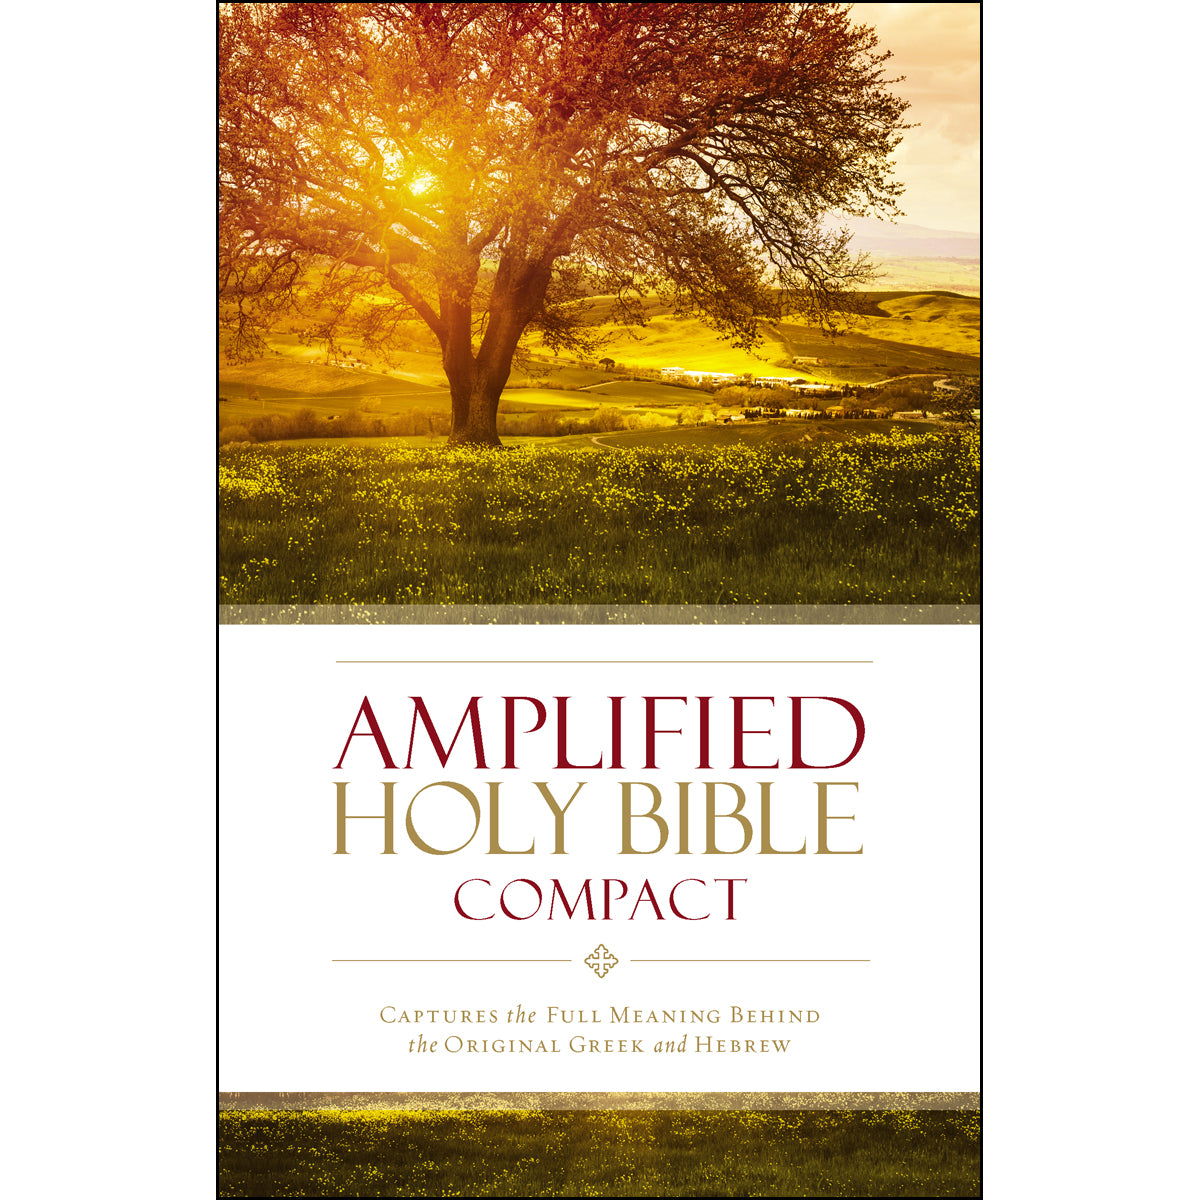 Amplified Compact Holy Bible (Hardcover)